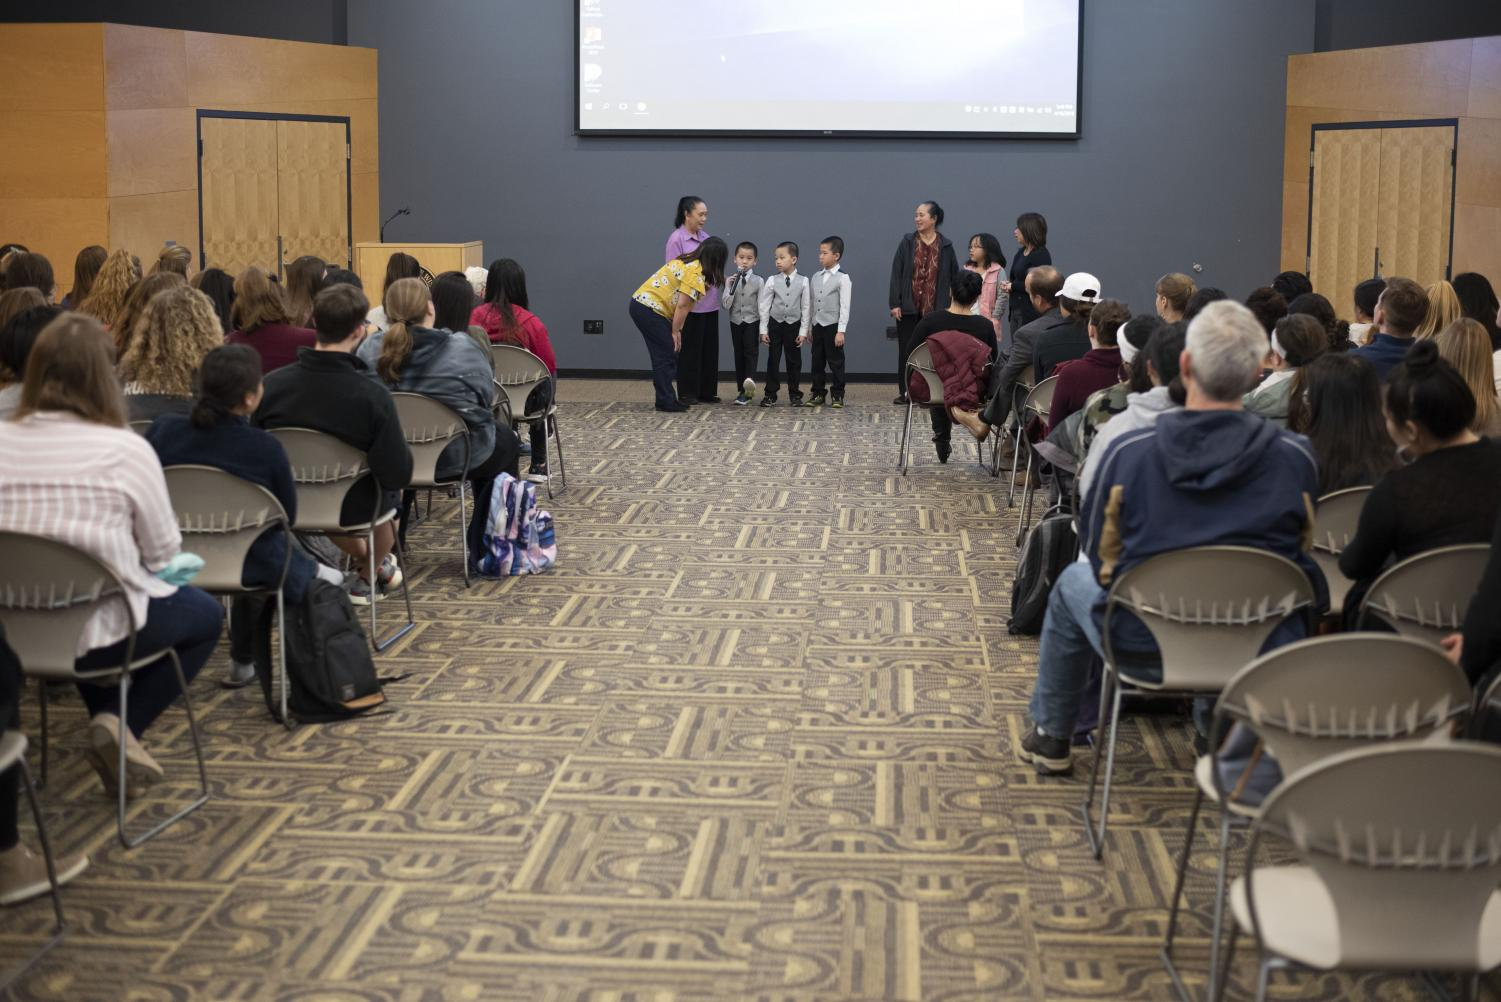 "UW Oshkosh hosted ""Hmong Women Share Stories of Hmong Culture and Surviving Genocide"" in Reeve Union on April 16 by welcoming local individuals to share their stories through presentations and videos."